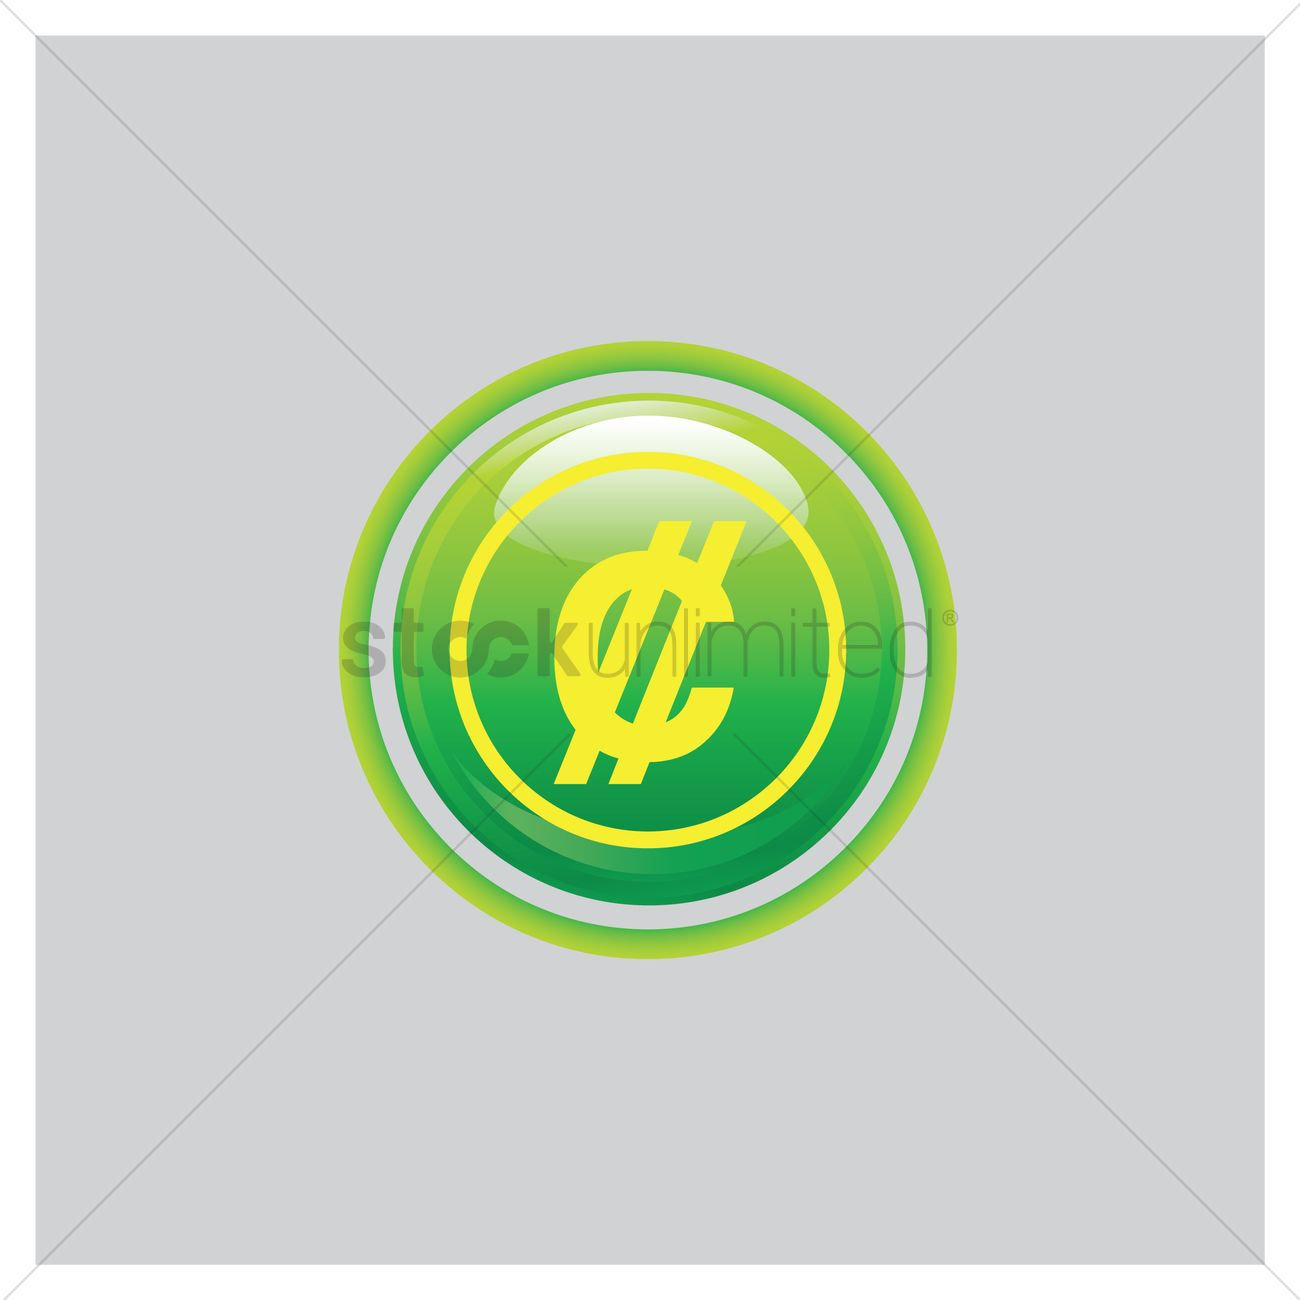 Costa Rican Colon Icon Vector Image 1635573 Stockunlimited